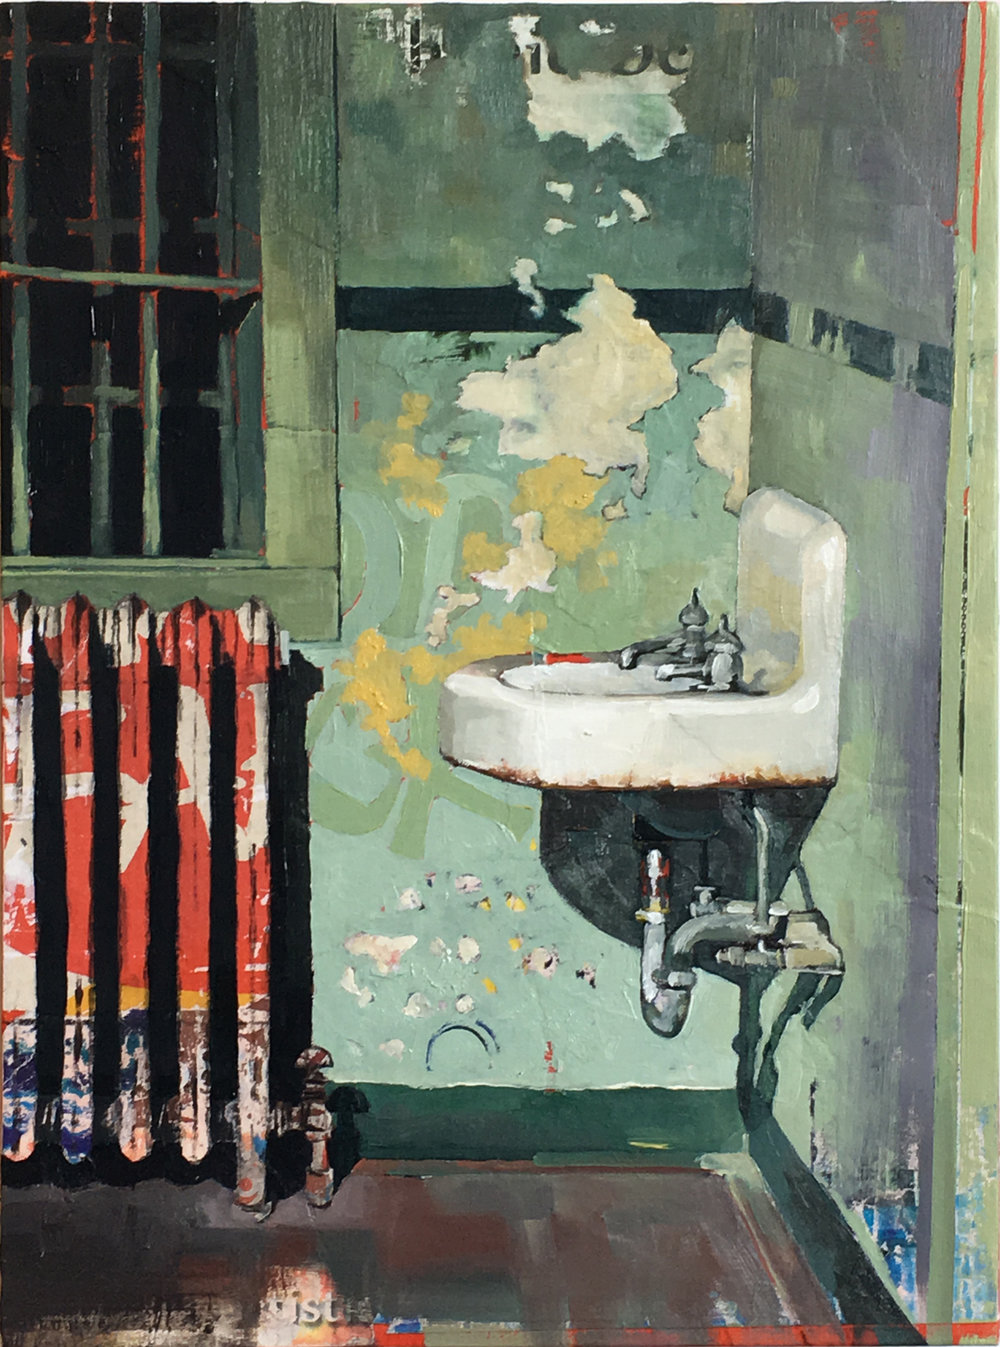 Alcatraz Sink No. 2